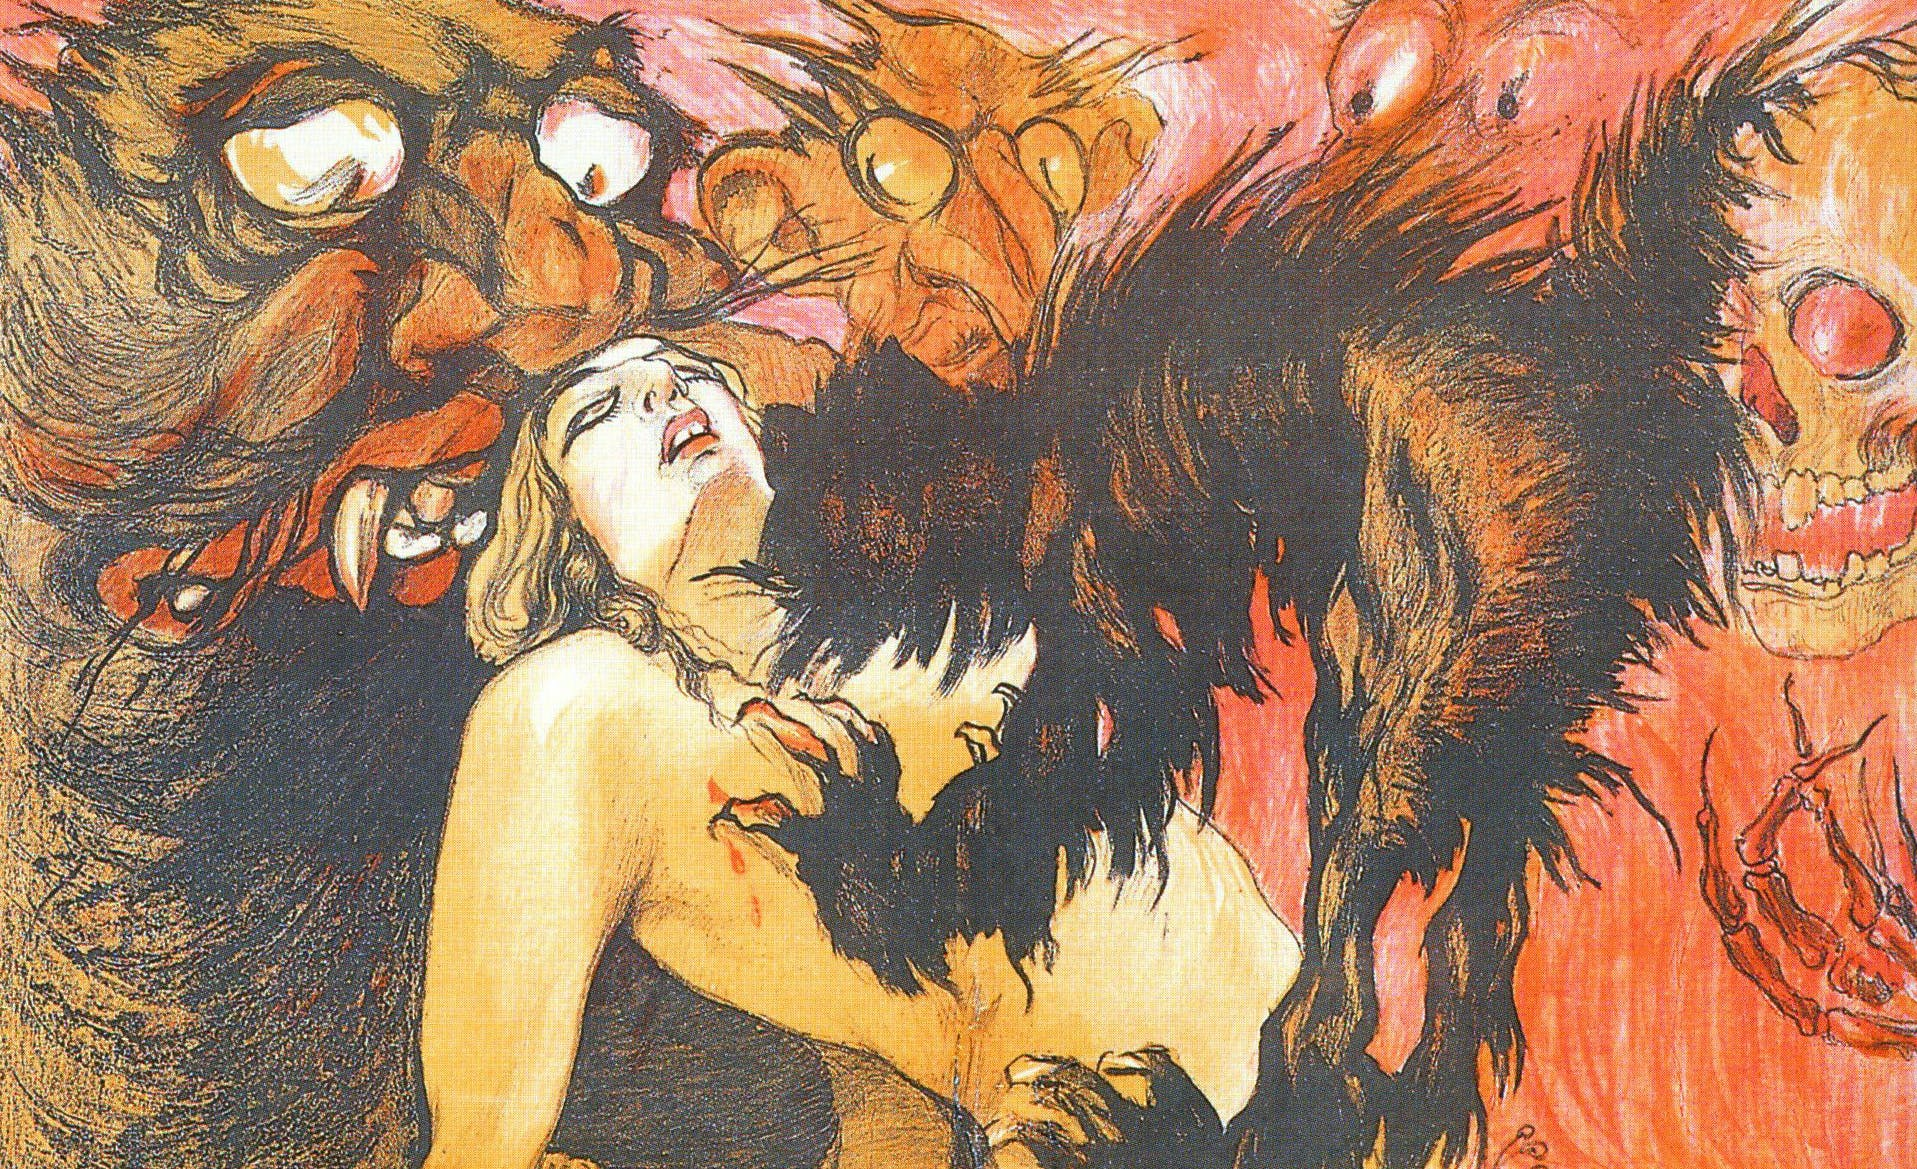 CREEPY EROTIC MOVIE POSTERS OF LATE IMPERIAL RUSSIA